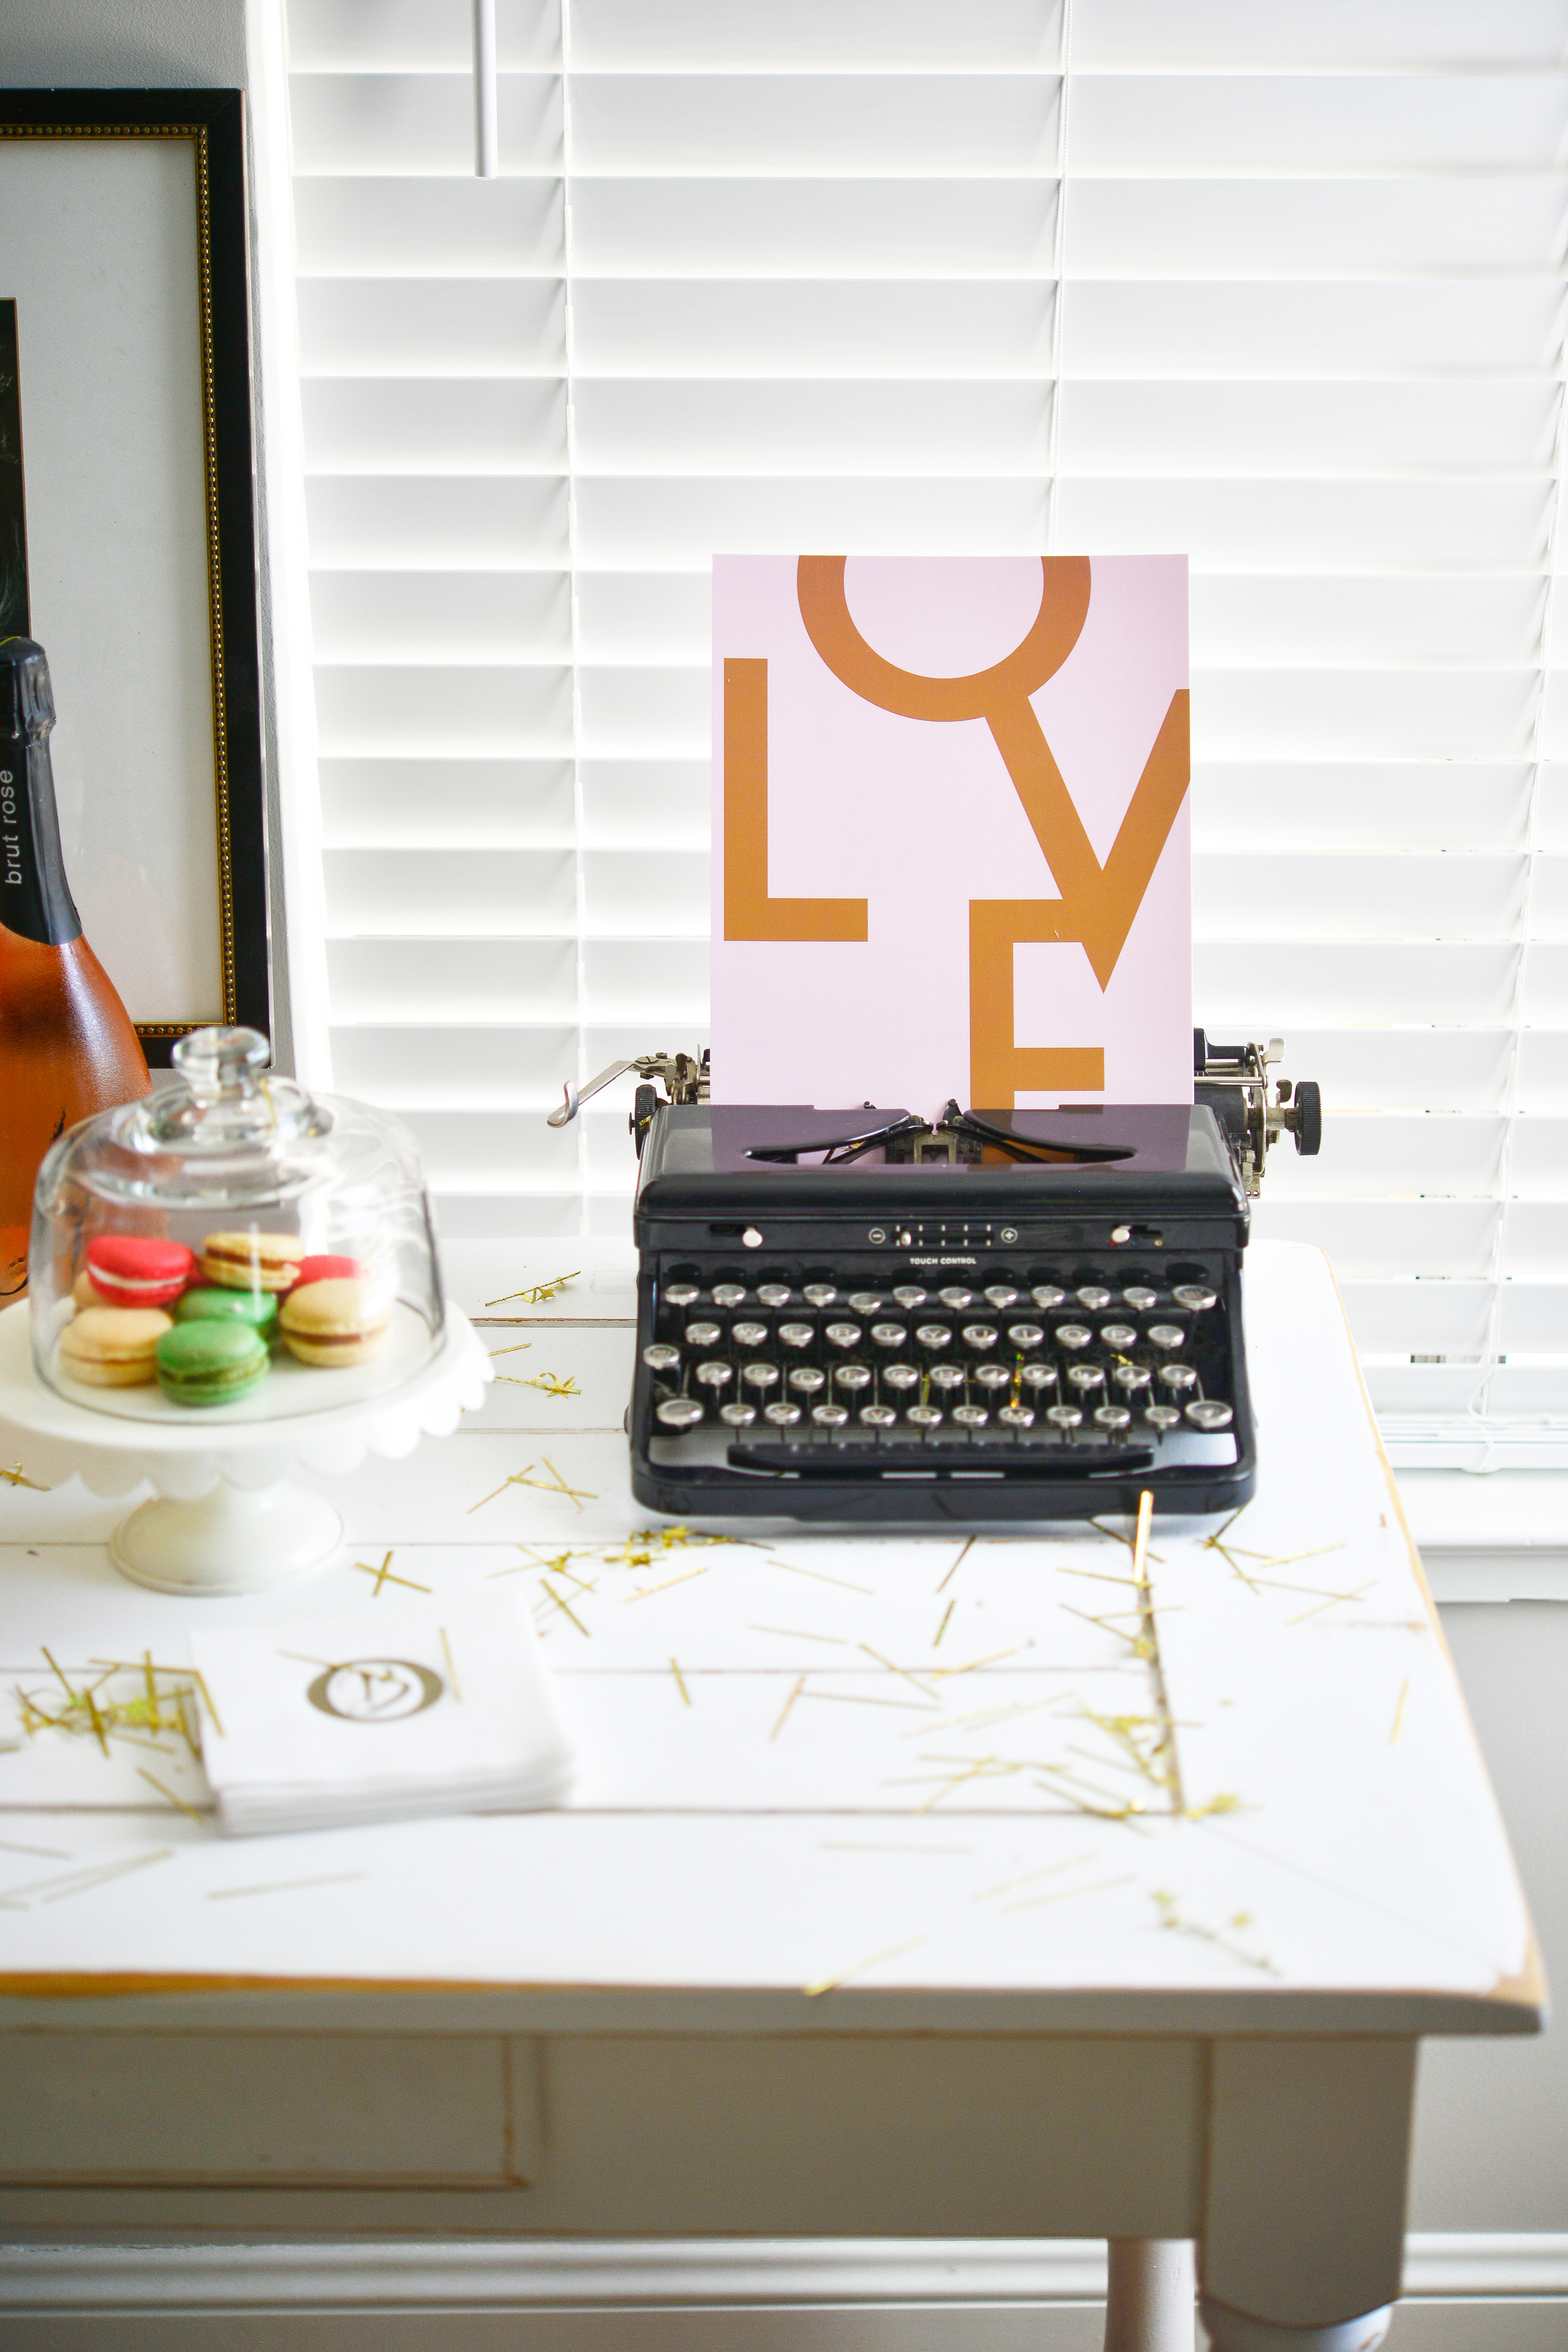 Have fun and be creative when decorating, you never know what great combinations you'll come up with.  LOVE sign can be purchased from  Chapters.Indigo